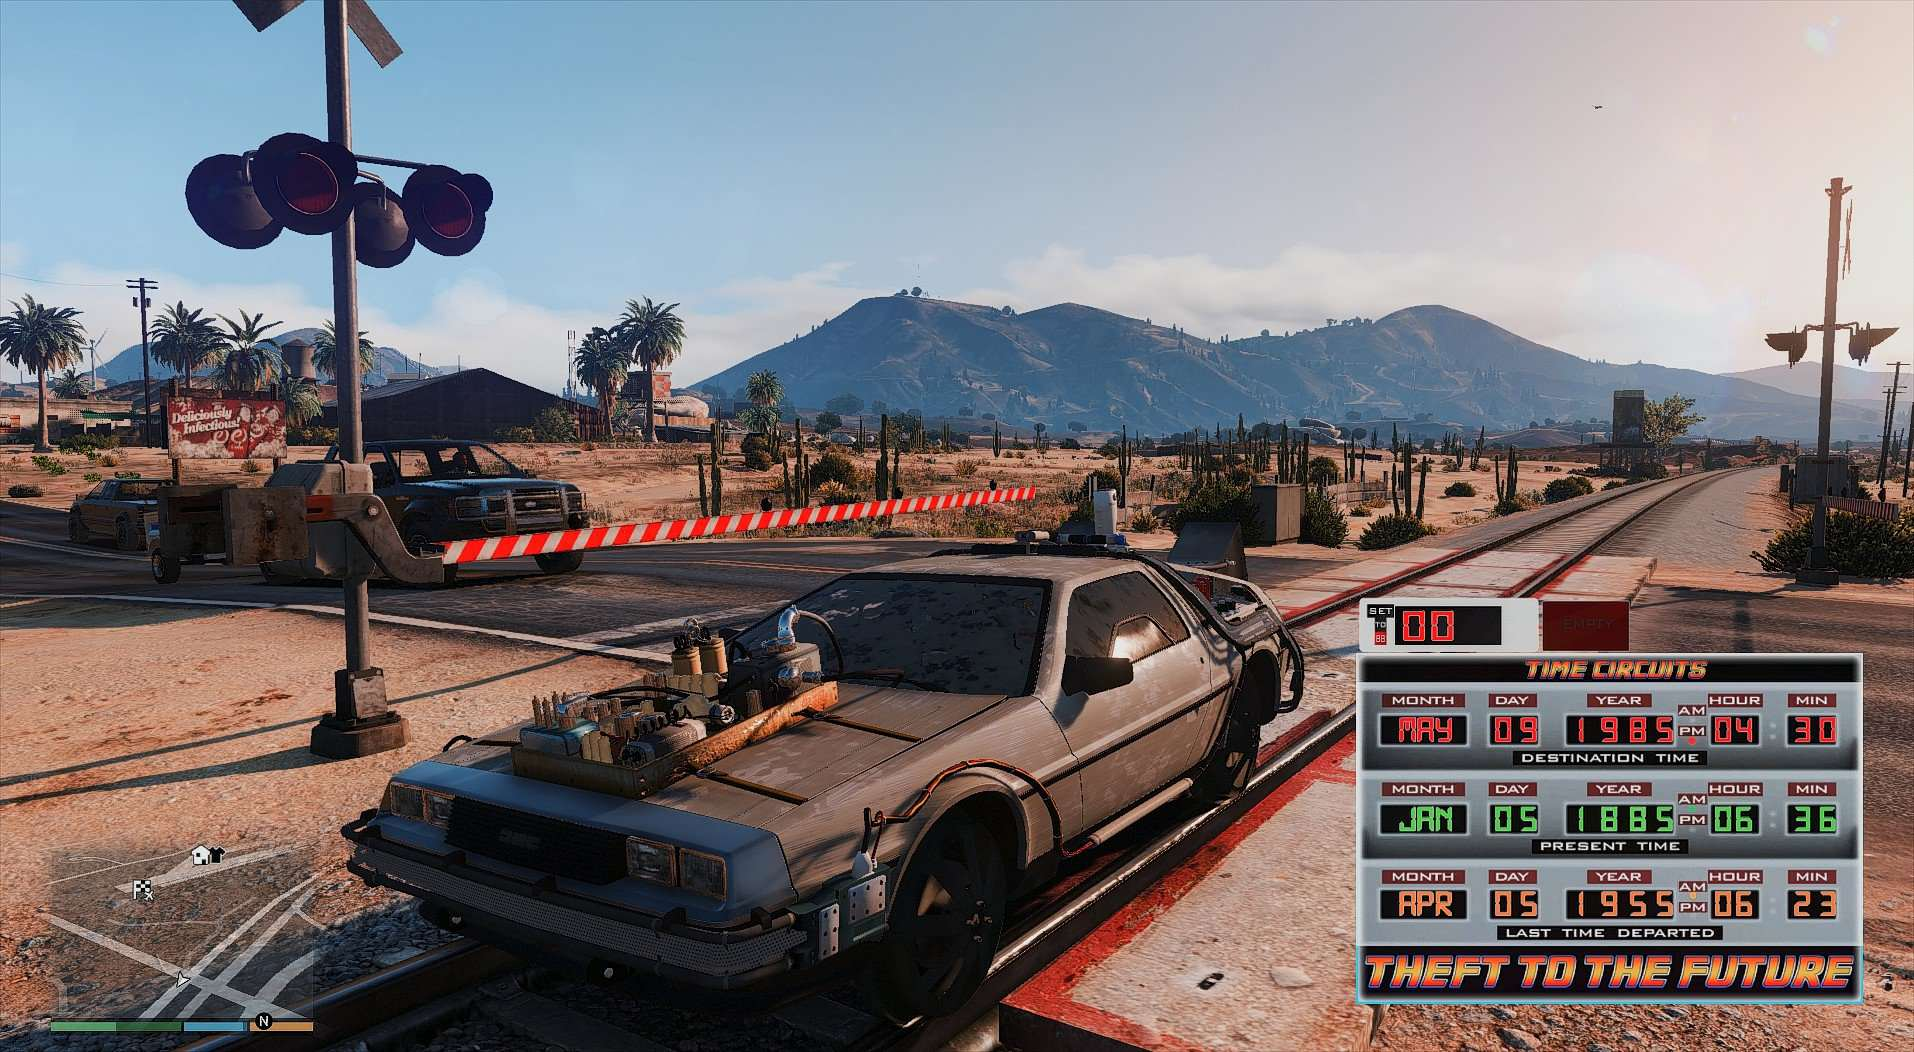 A Back To The Future GTA 5 Mod Exists, With Time Travel db9ef4 20160601002336 1